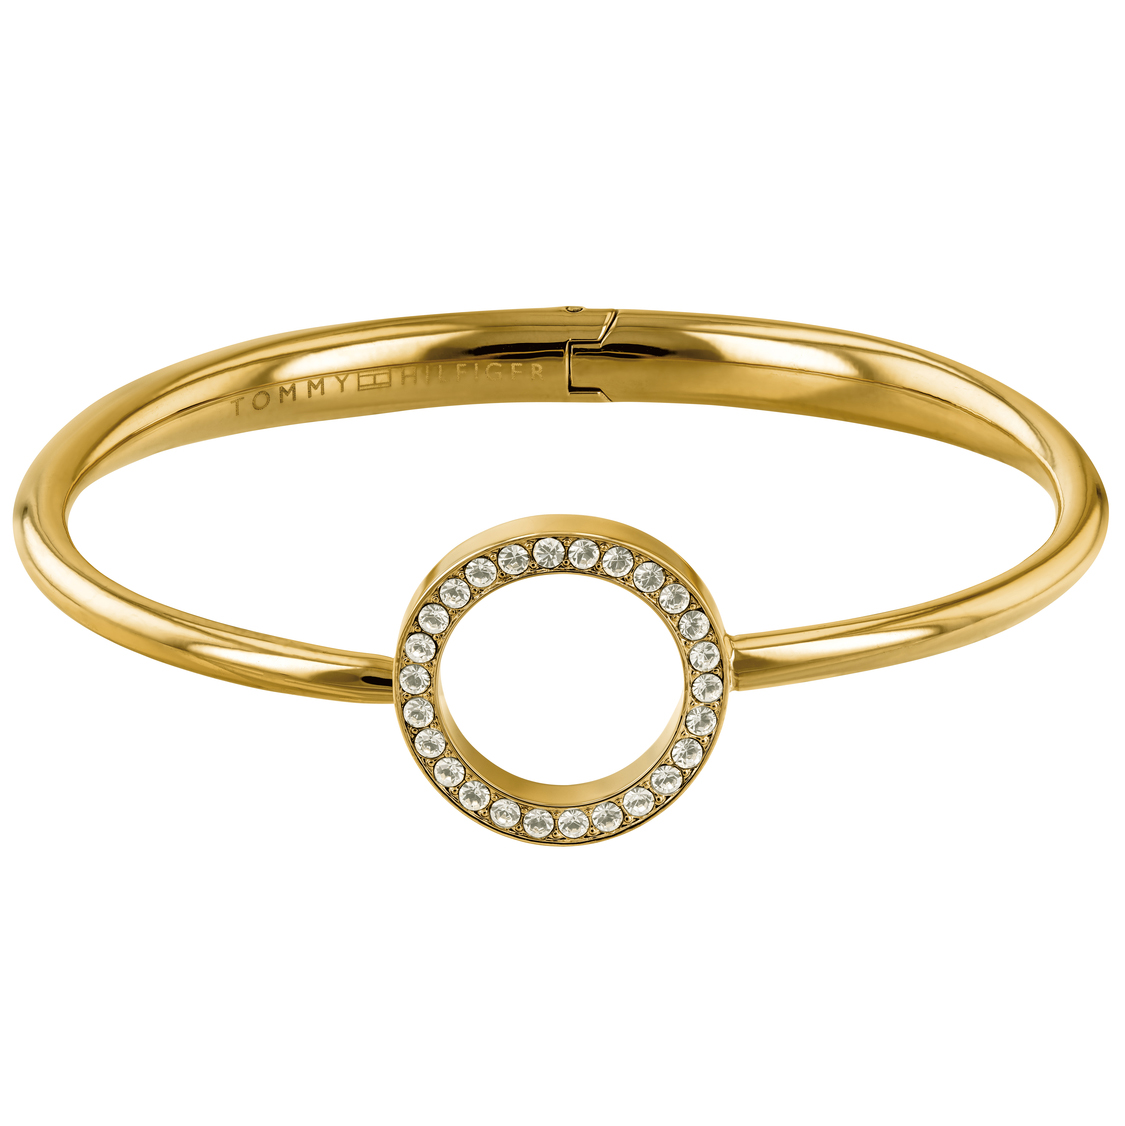 TOMMY HILFIGER THJ2780065 OPEN CIRCLE BANGLE RANNERENGAS